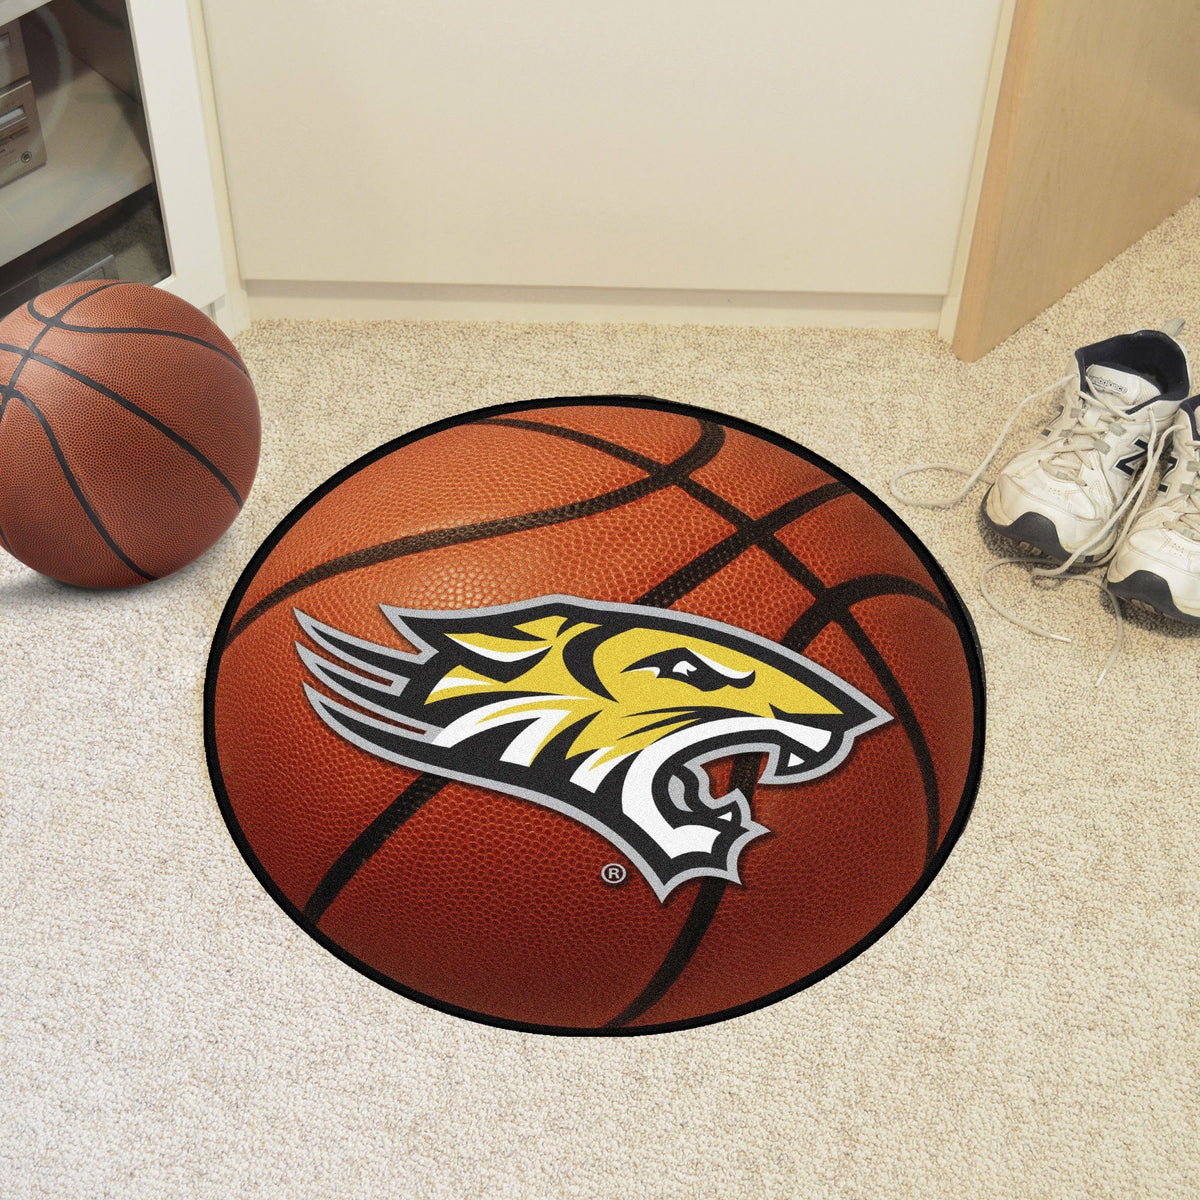 Collegiate - Basketball Mat: T - Z Collegiate Mats, Rectangular Mats, Basketball Mat, Collegiate, Home Fan Mats Towson